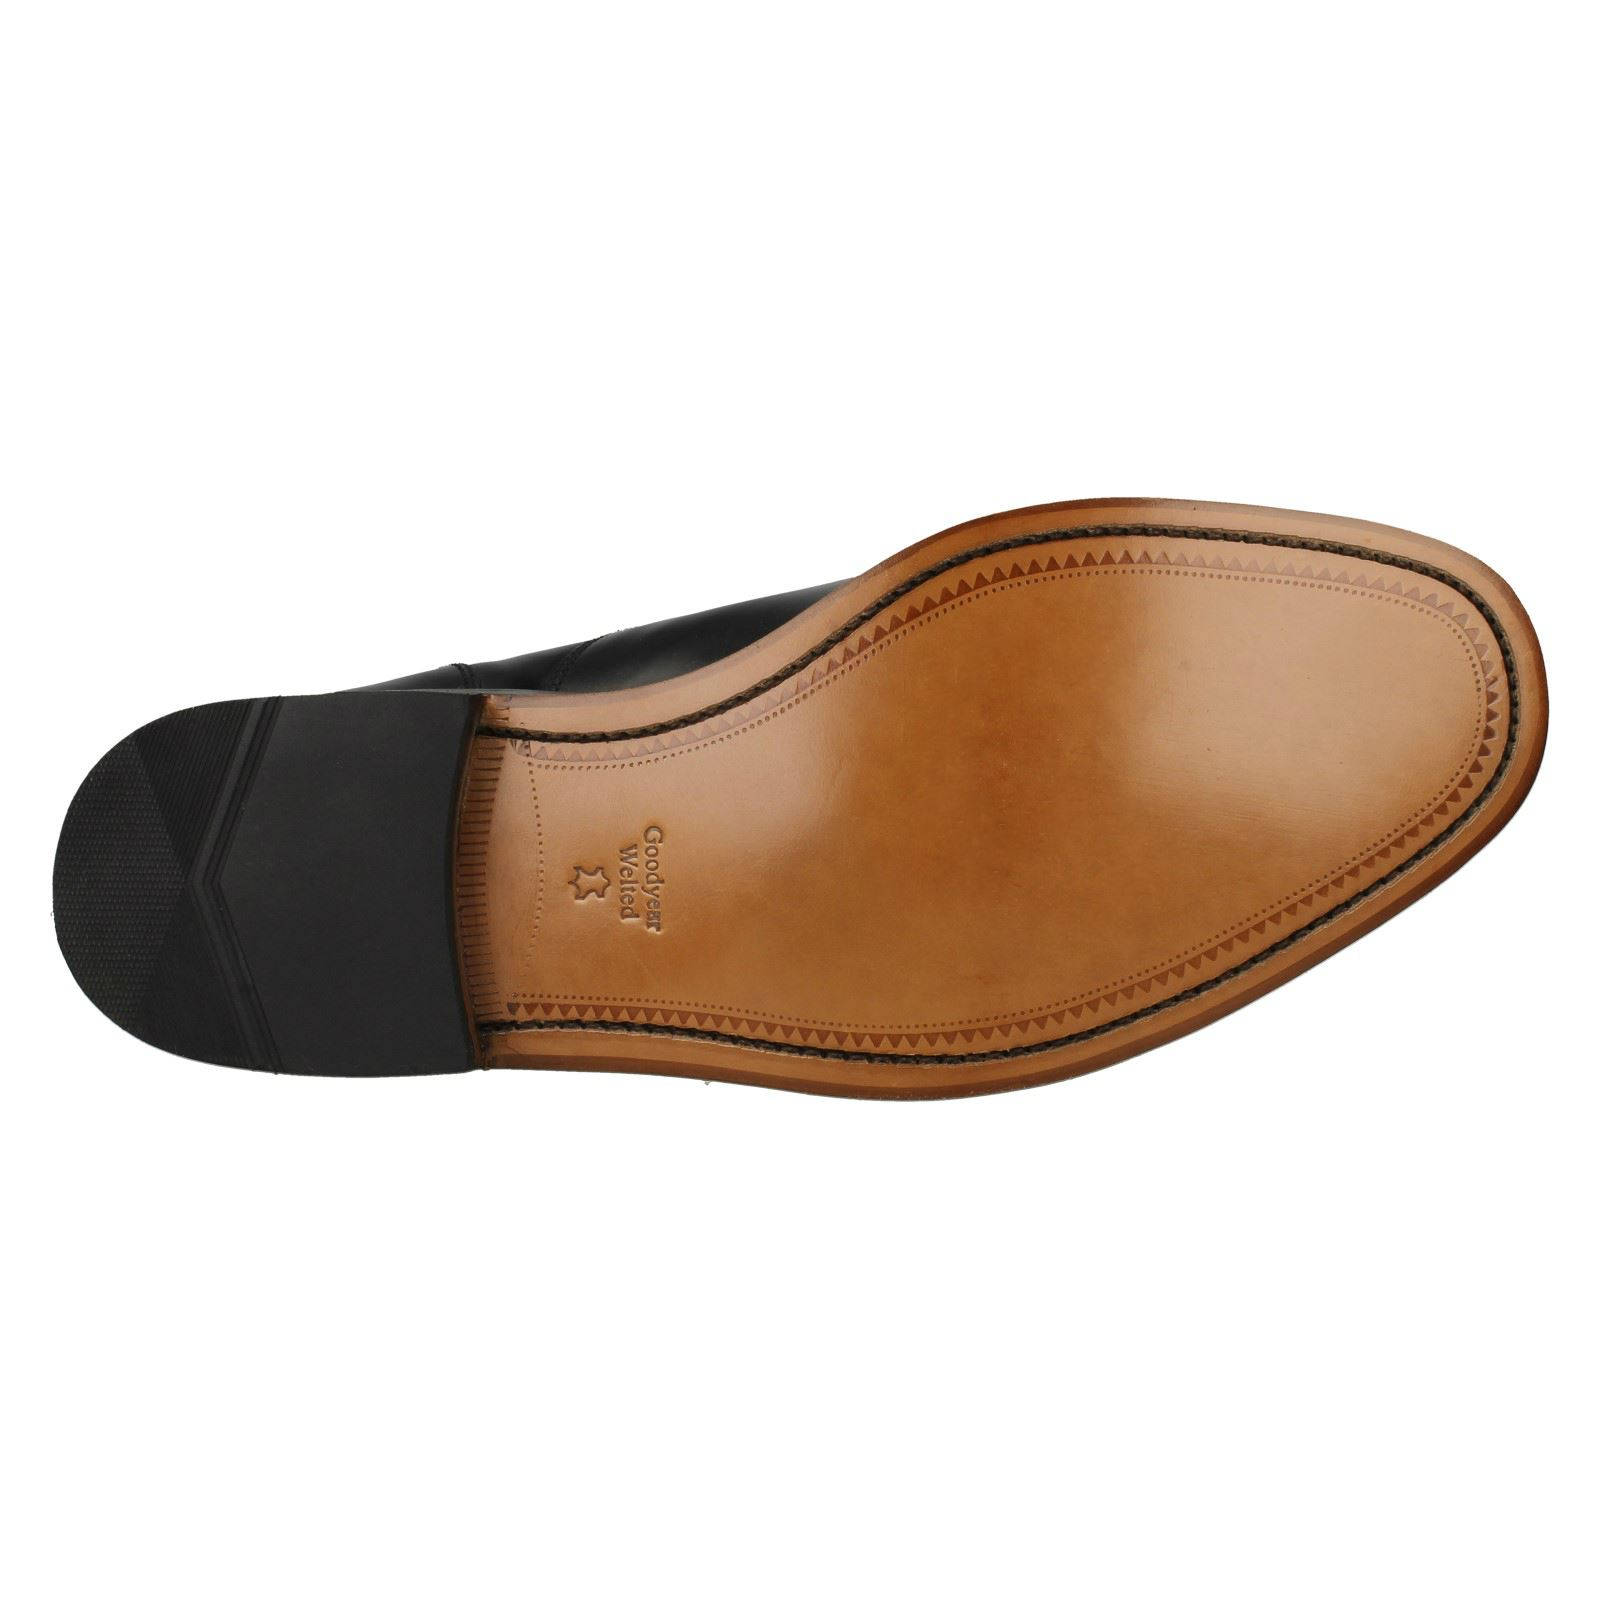 Mens Loake Formal Shoes Shoes Shoes